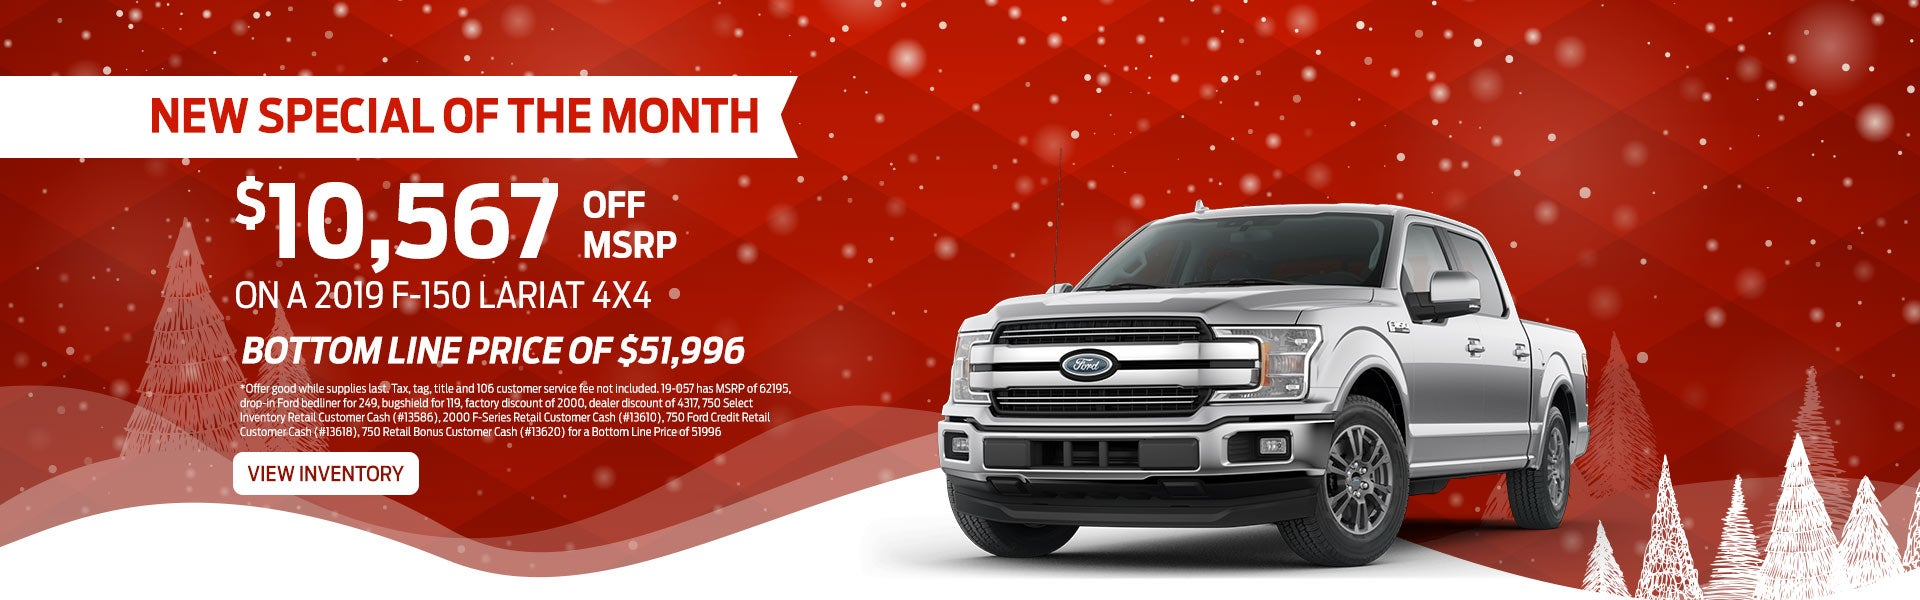 Ford Dealerships In Ga >> Ford Dealer In Adel Ga Used Cars Adel Cook County Ford